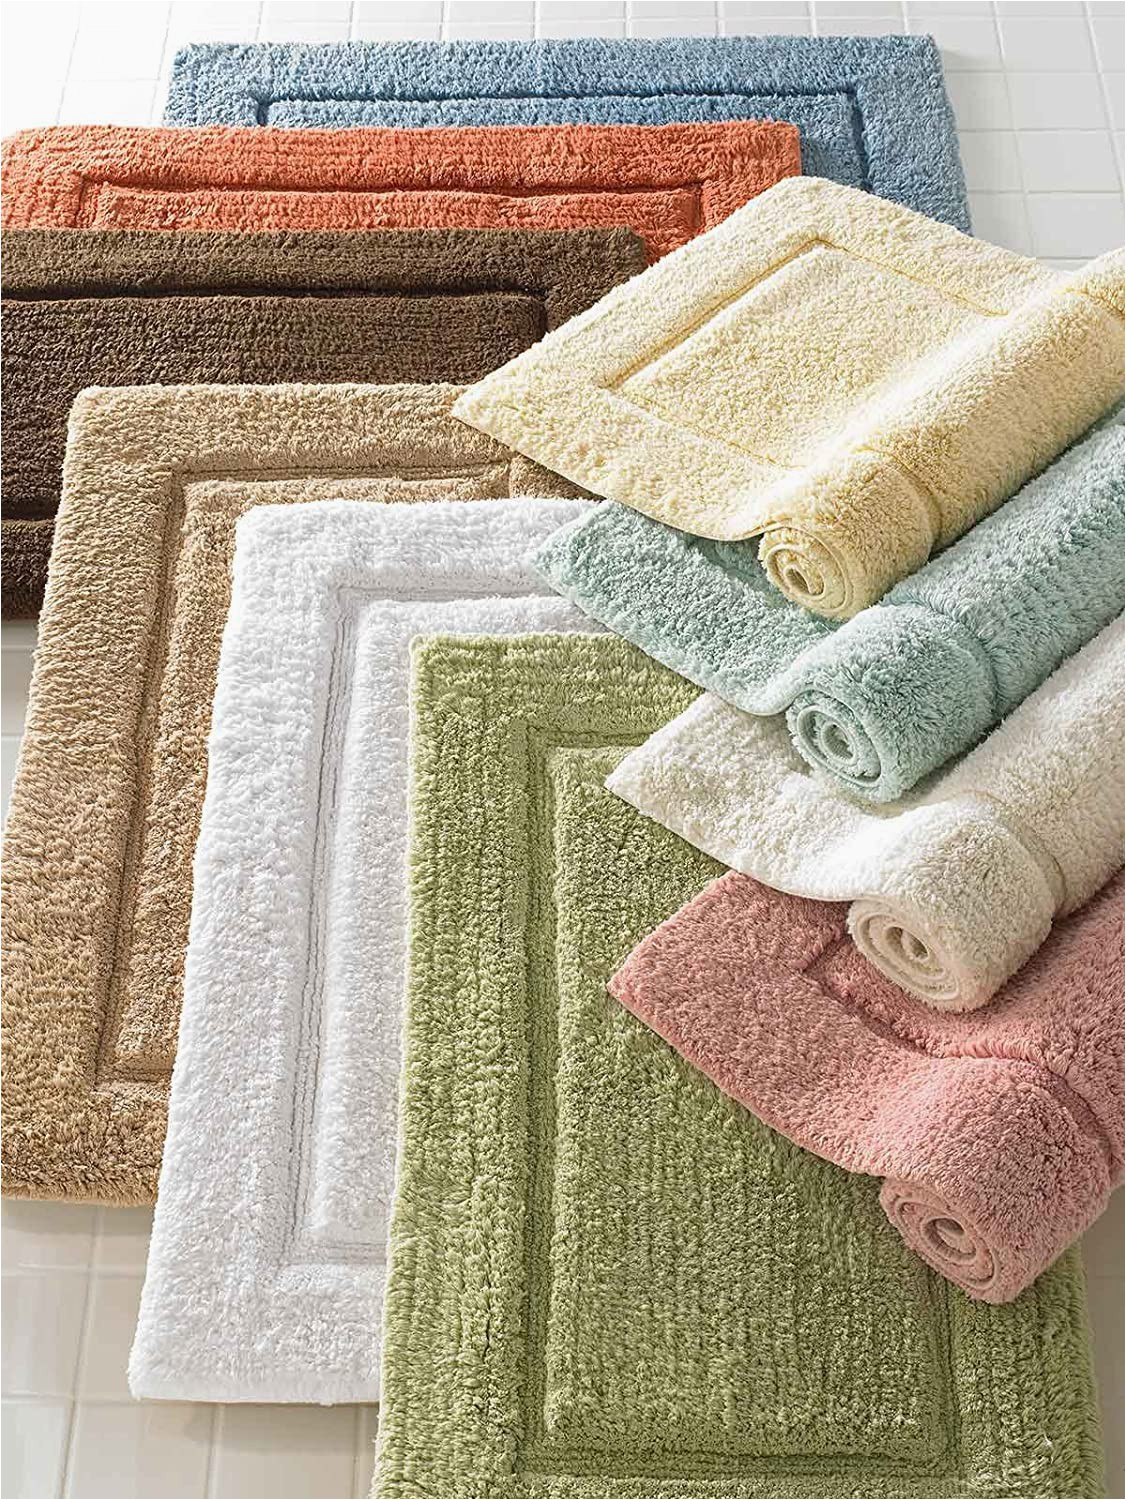 40 X 24 Bath Rug Amazon Luxor Linens Mariabella Egyptian Cotton